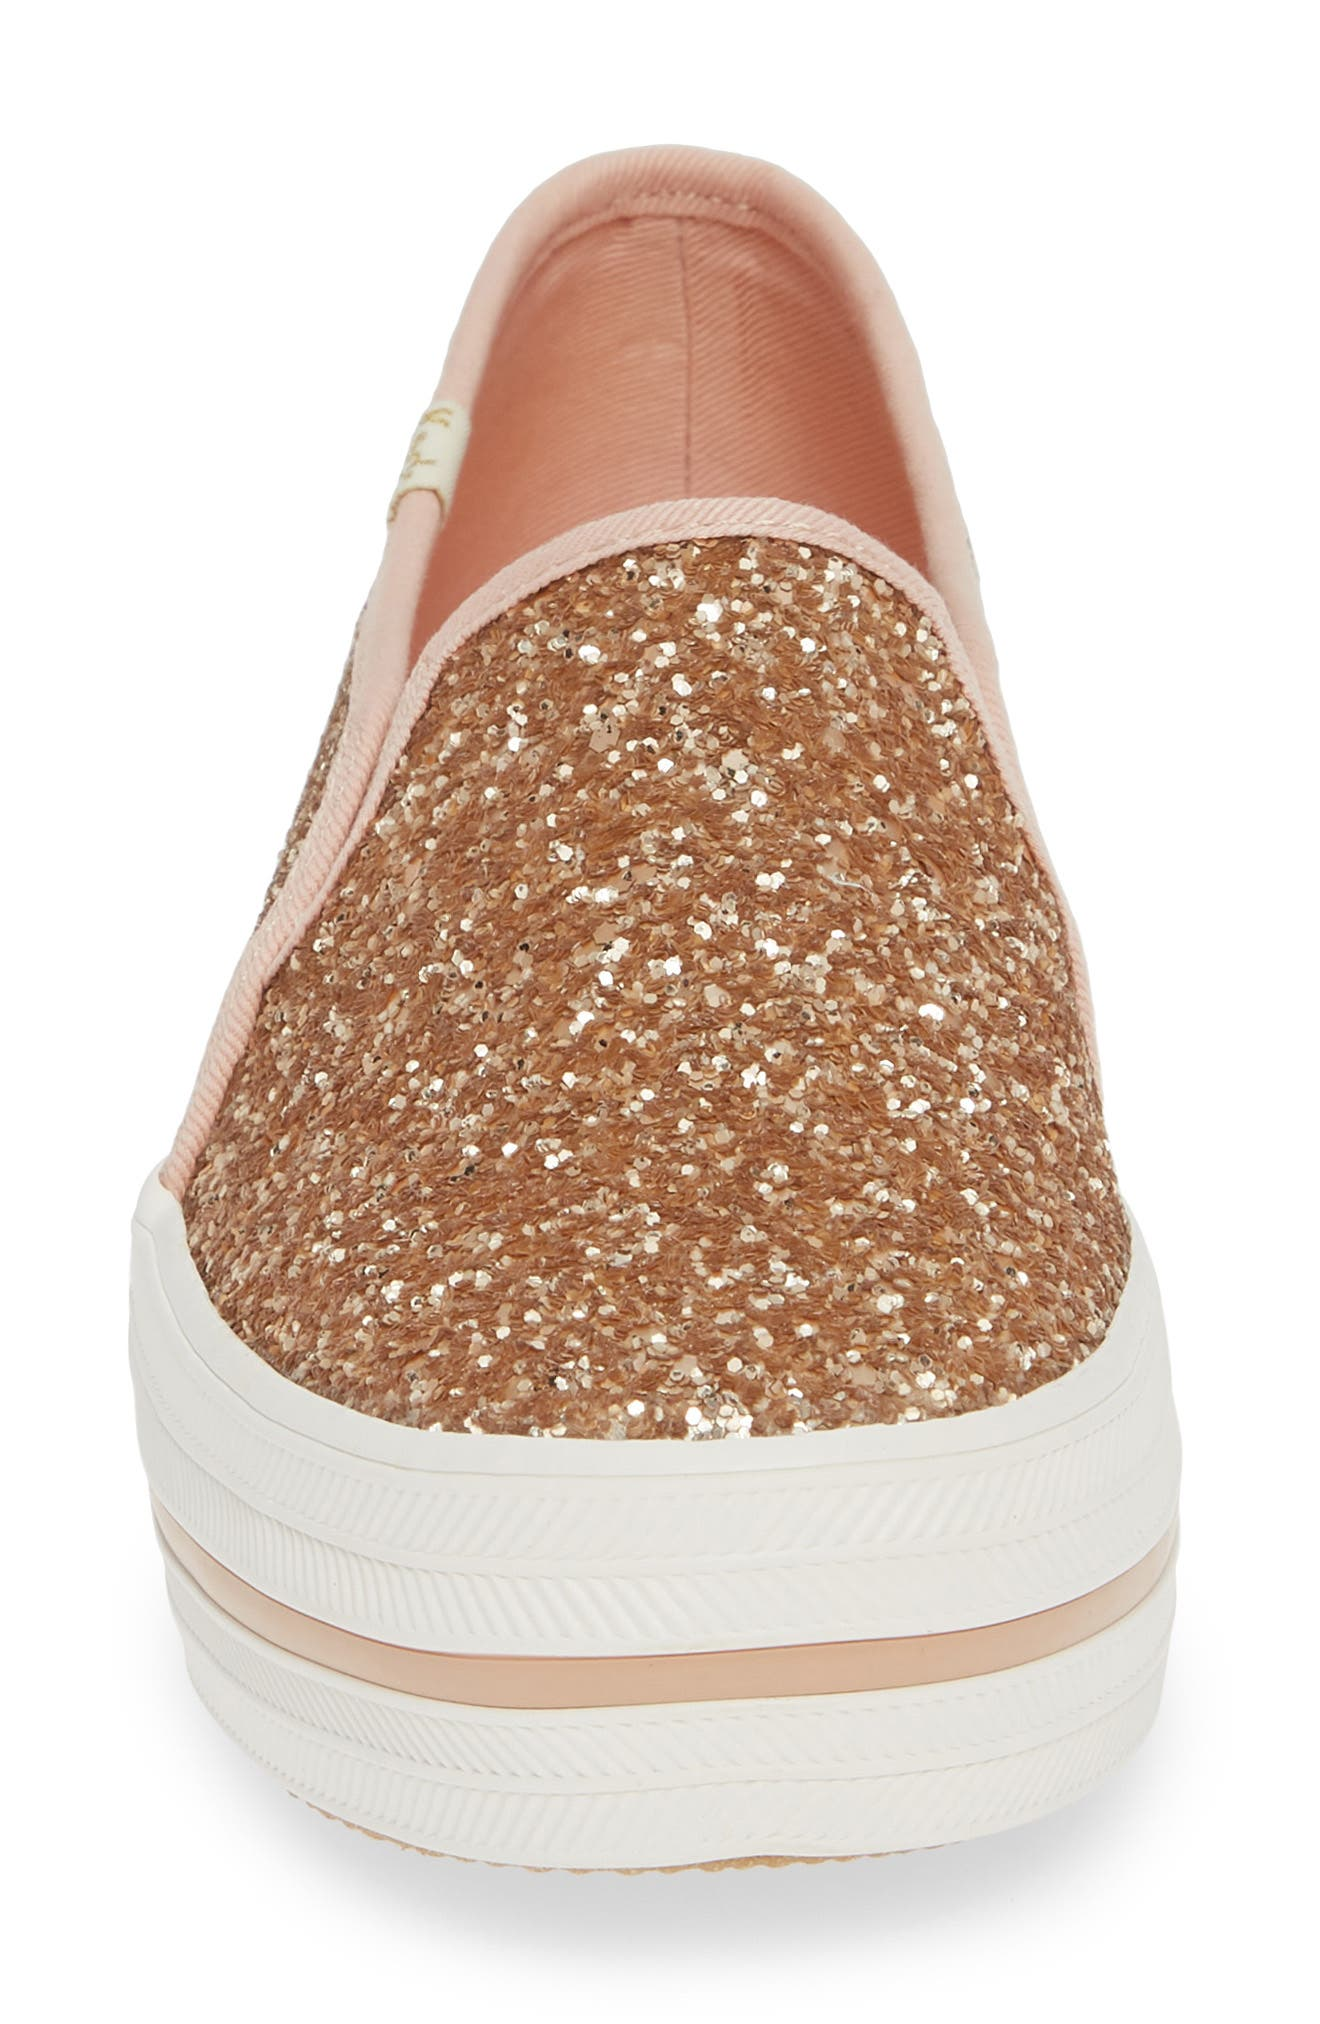 triple decker glitter slip-on sneaker,                             Alternate thumbnail 4, color,                             ROSE GOLD